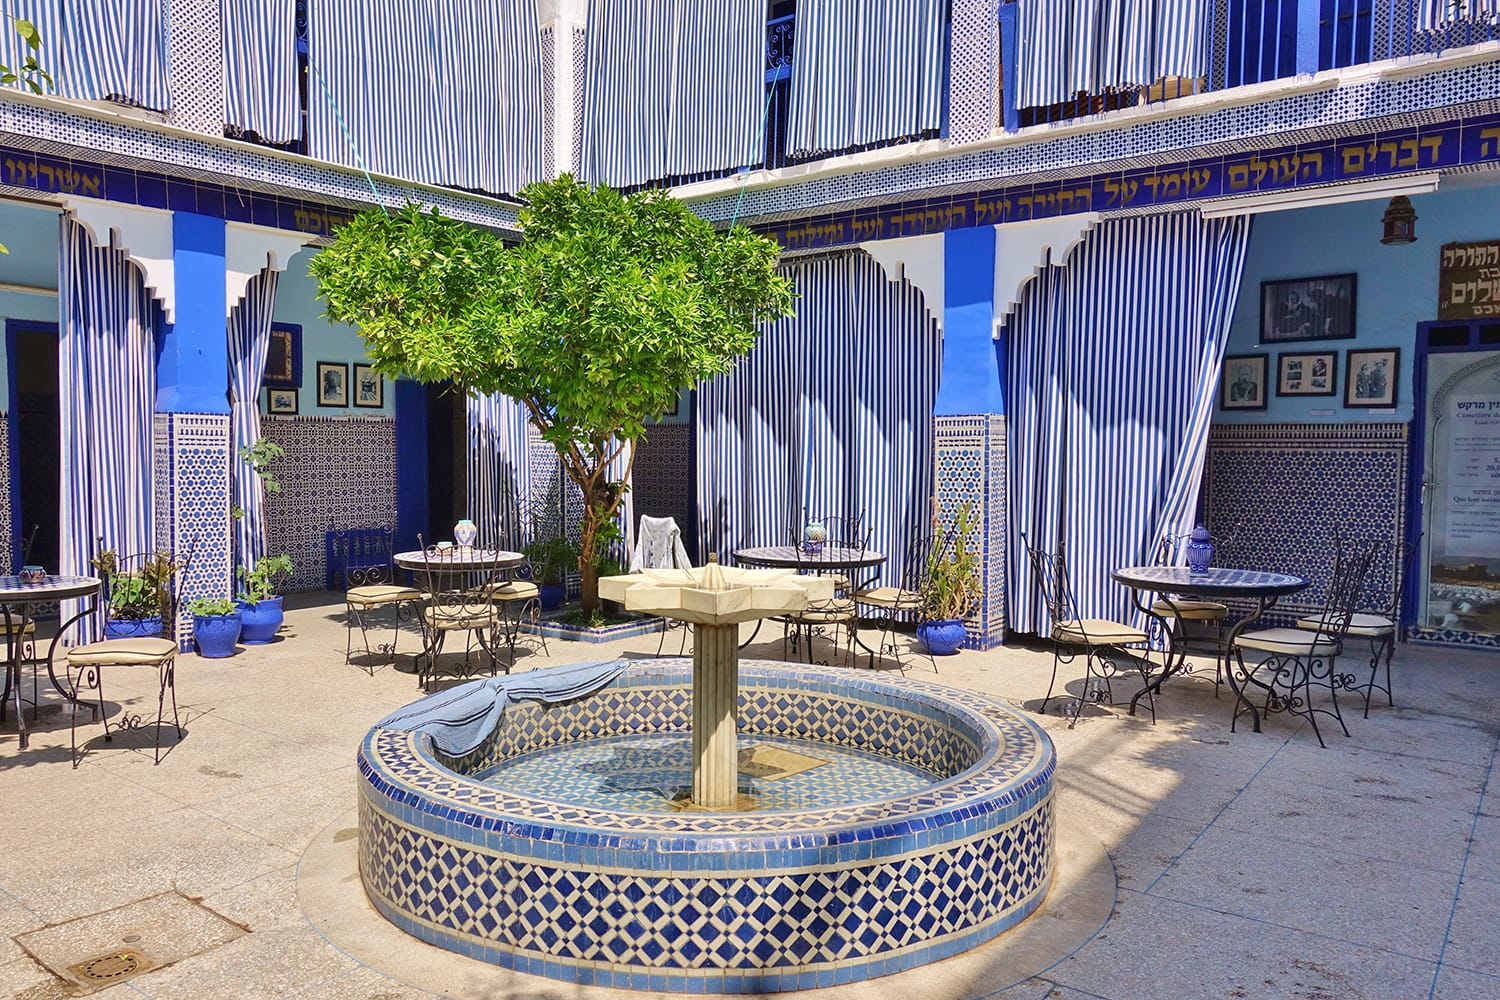 View of the blue Lazama Synagogue (Slat Al Azama) located in the Jewish Quarter in Marrakesh, Morocco.